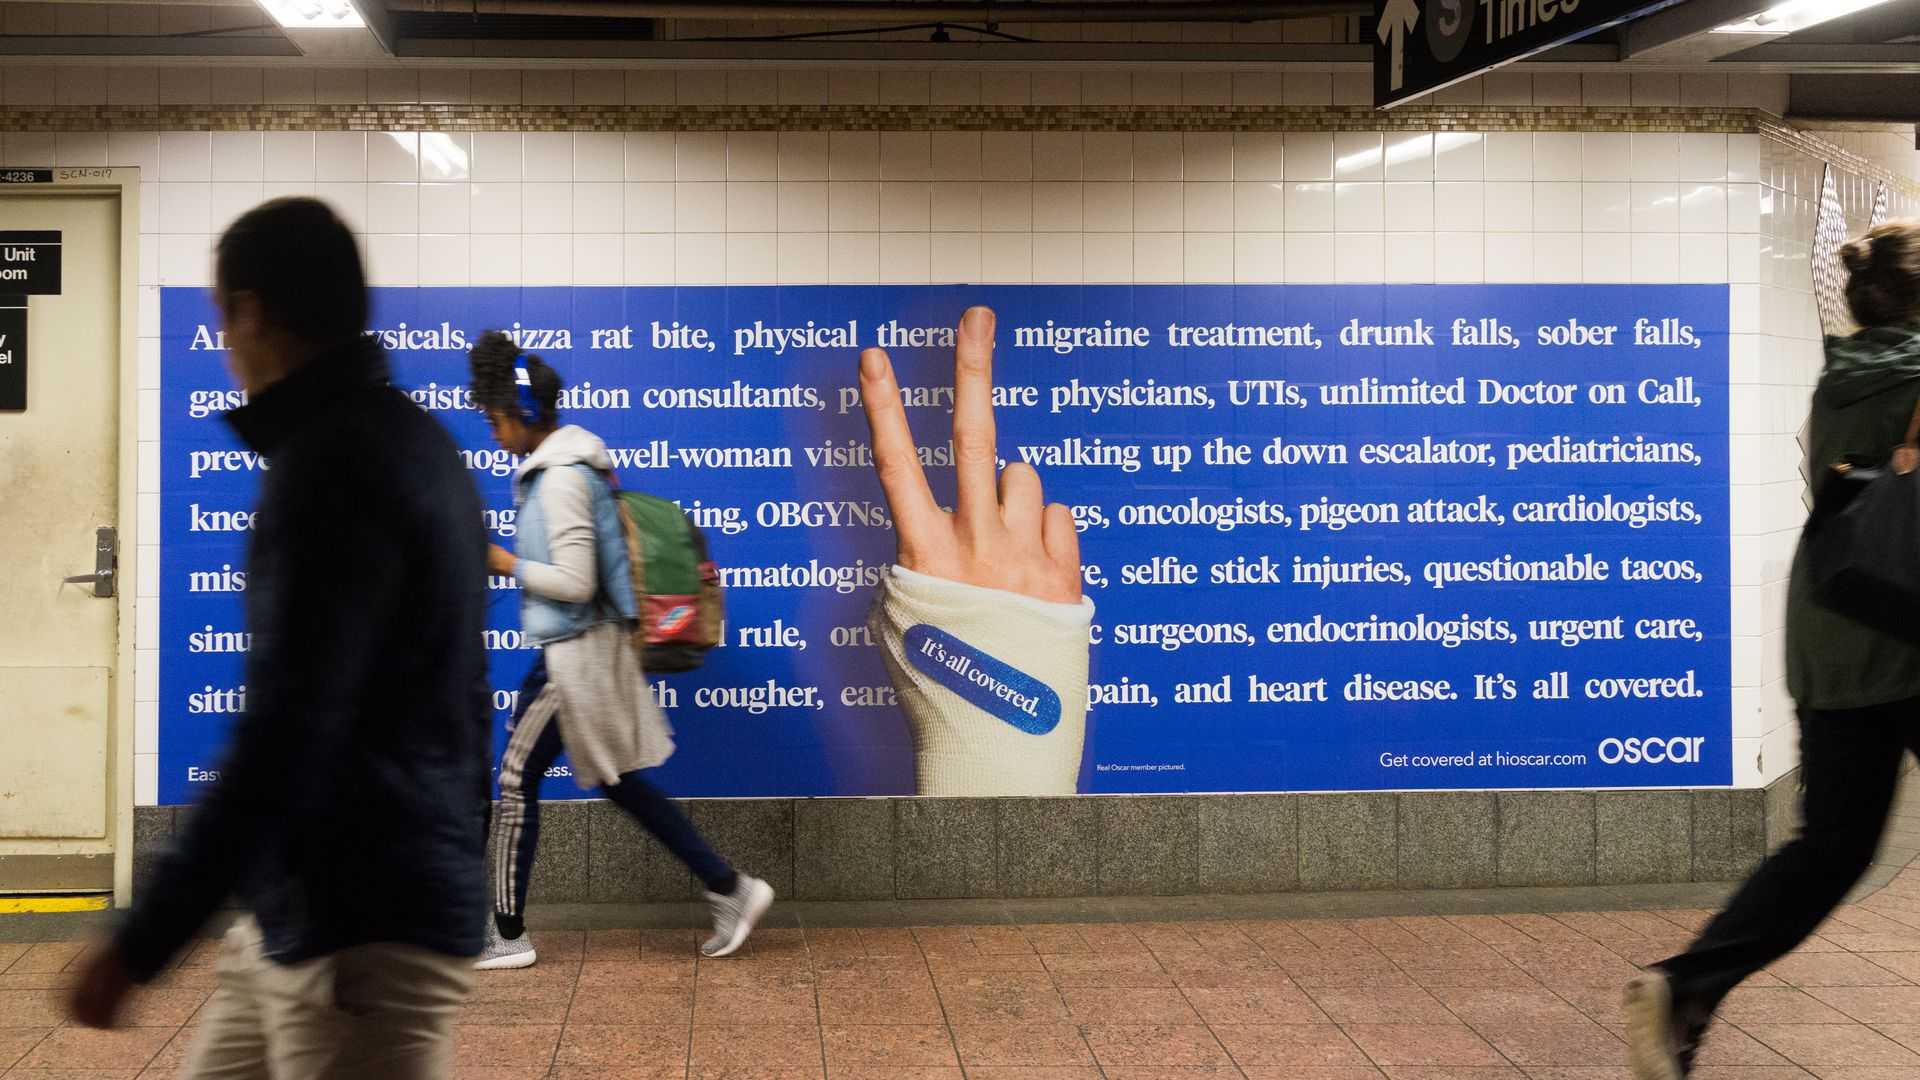 An advertisement for Oscar health insurance in a New York subway.